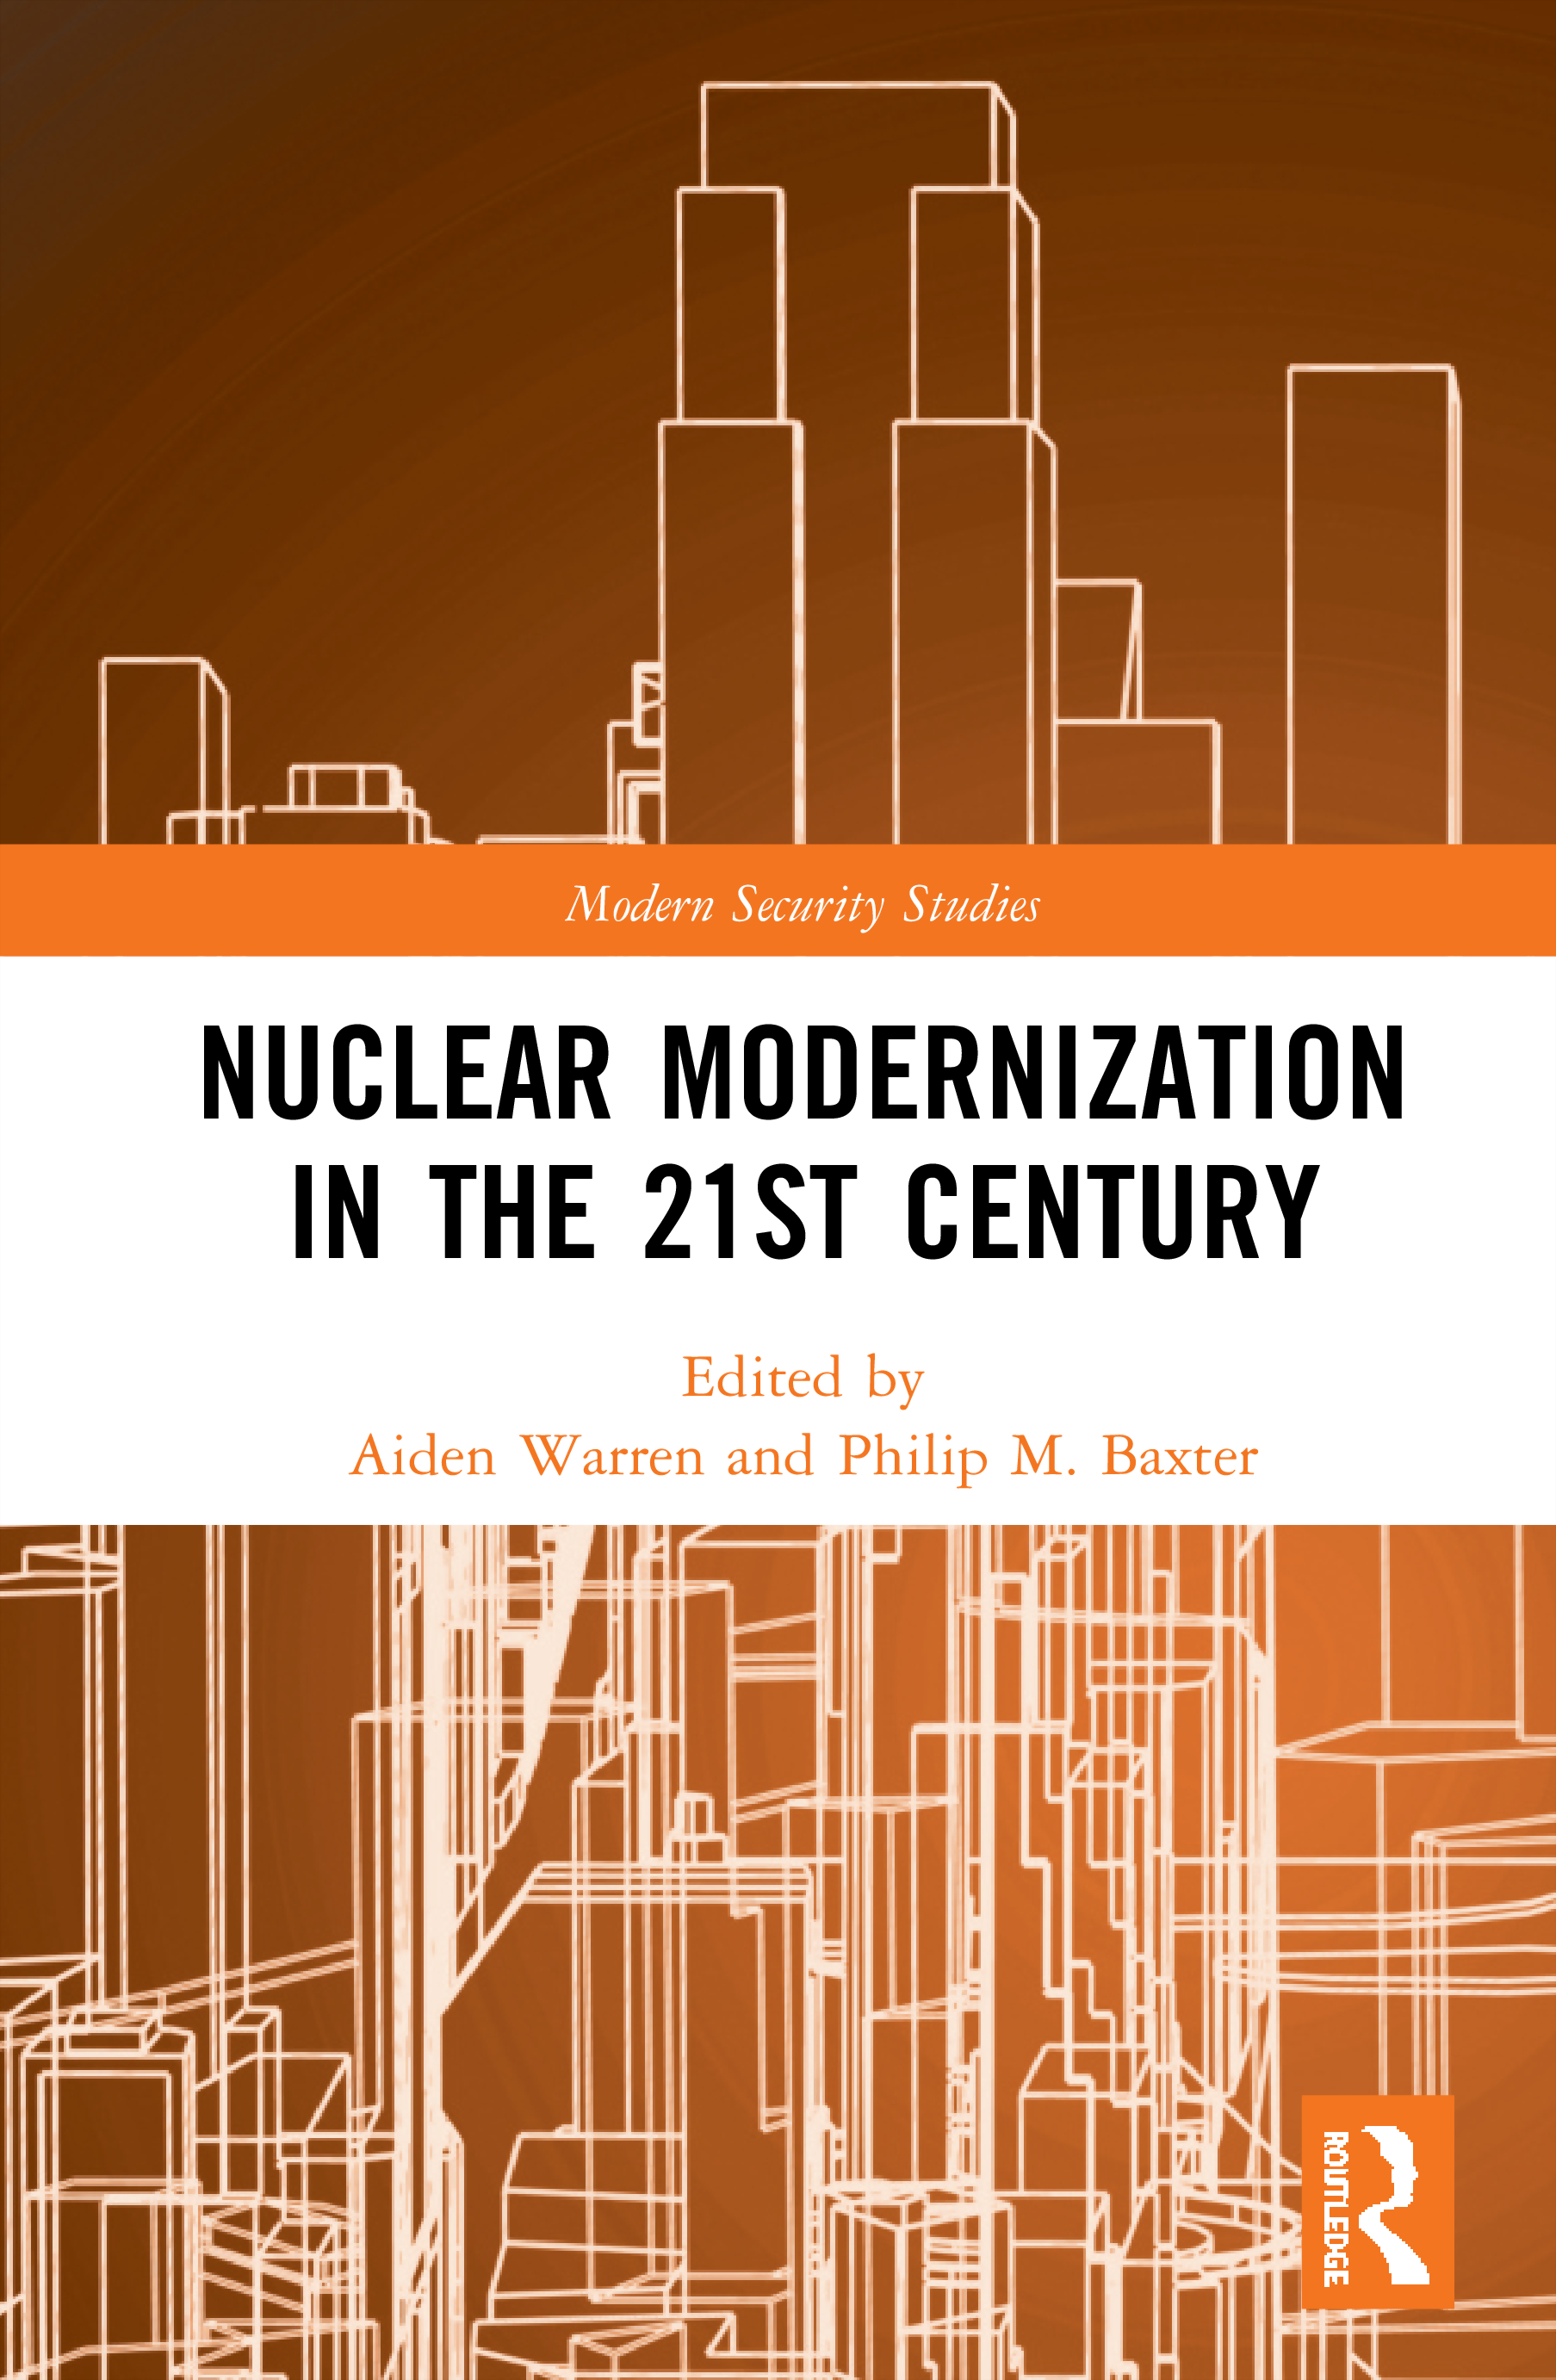 Nuclear Modernization in the 21st Century book cover